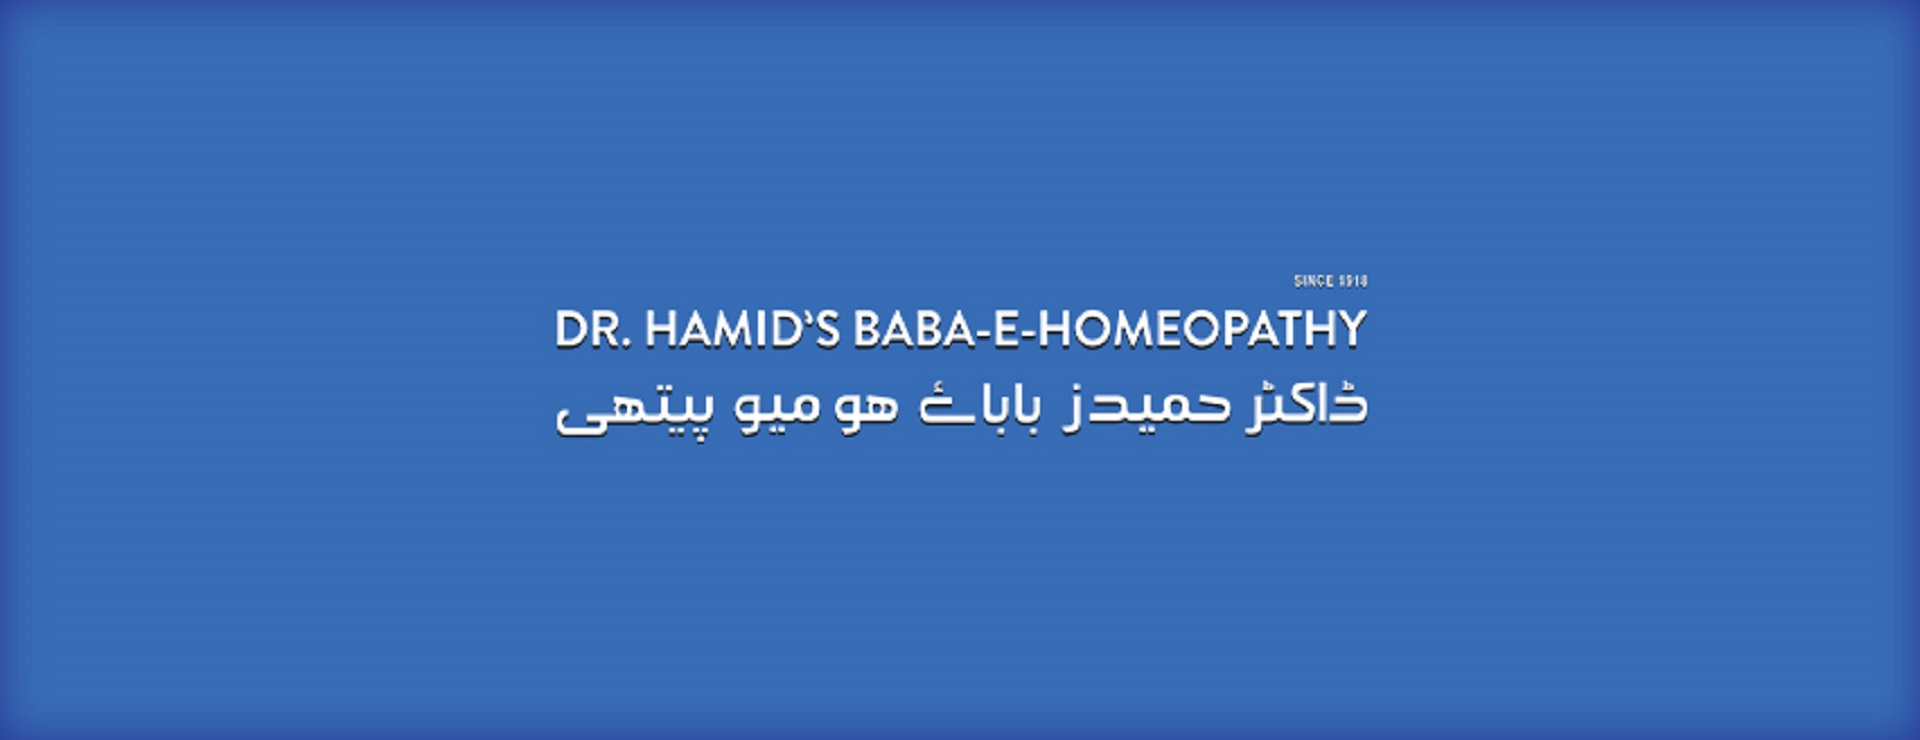 Dr hamid national homoeo clinic front